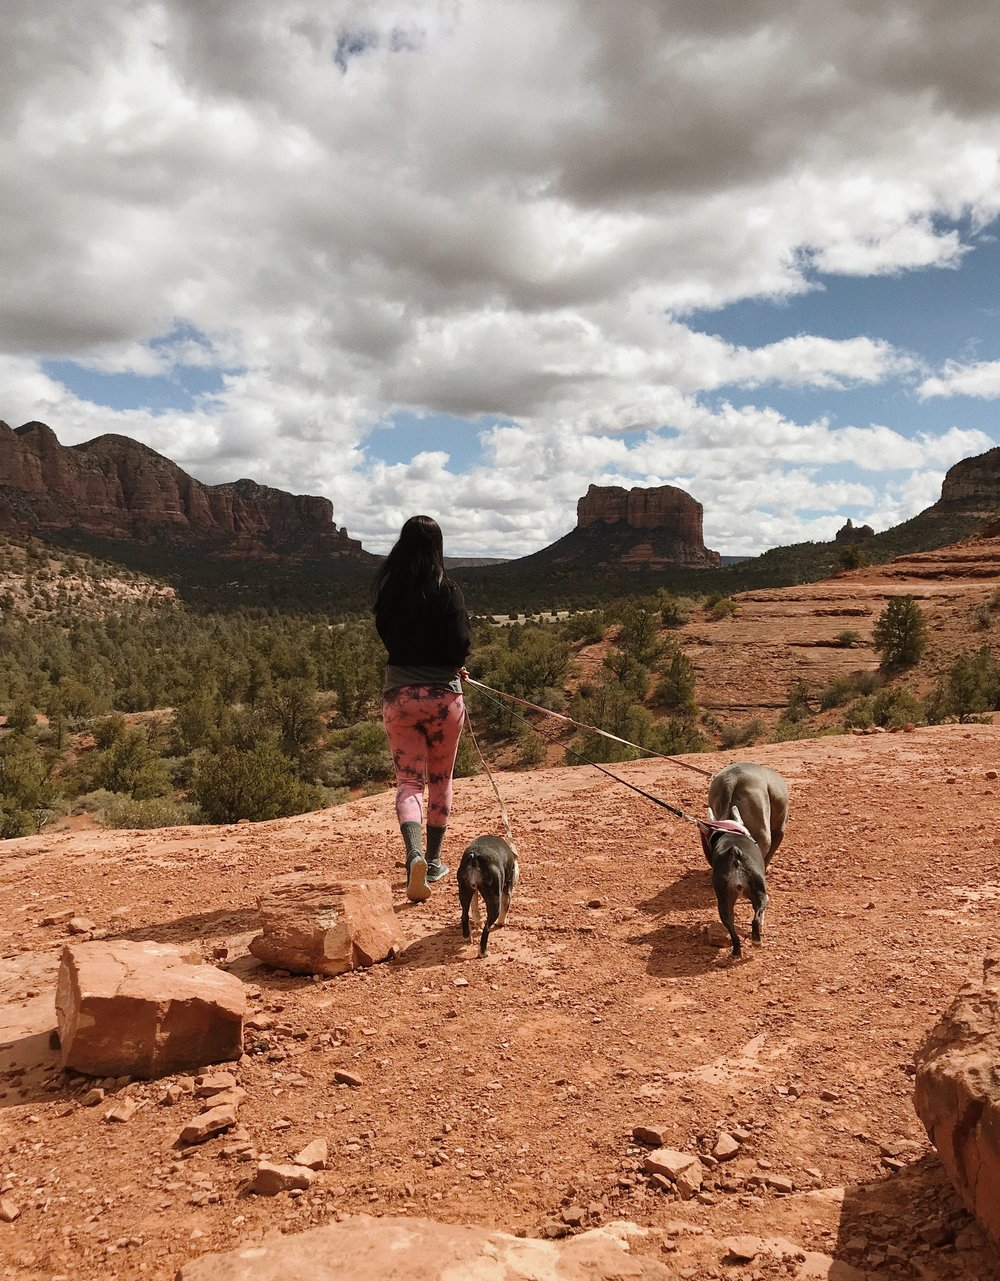 Road Trip Guide to Arizona and New Mexico // Laura Goldenberger